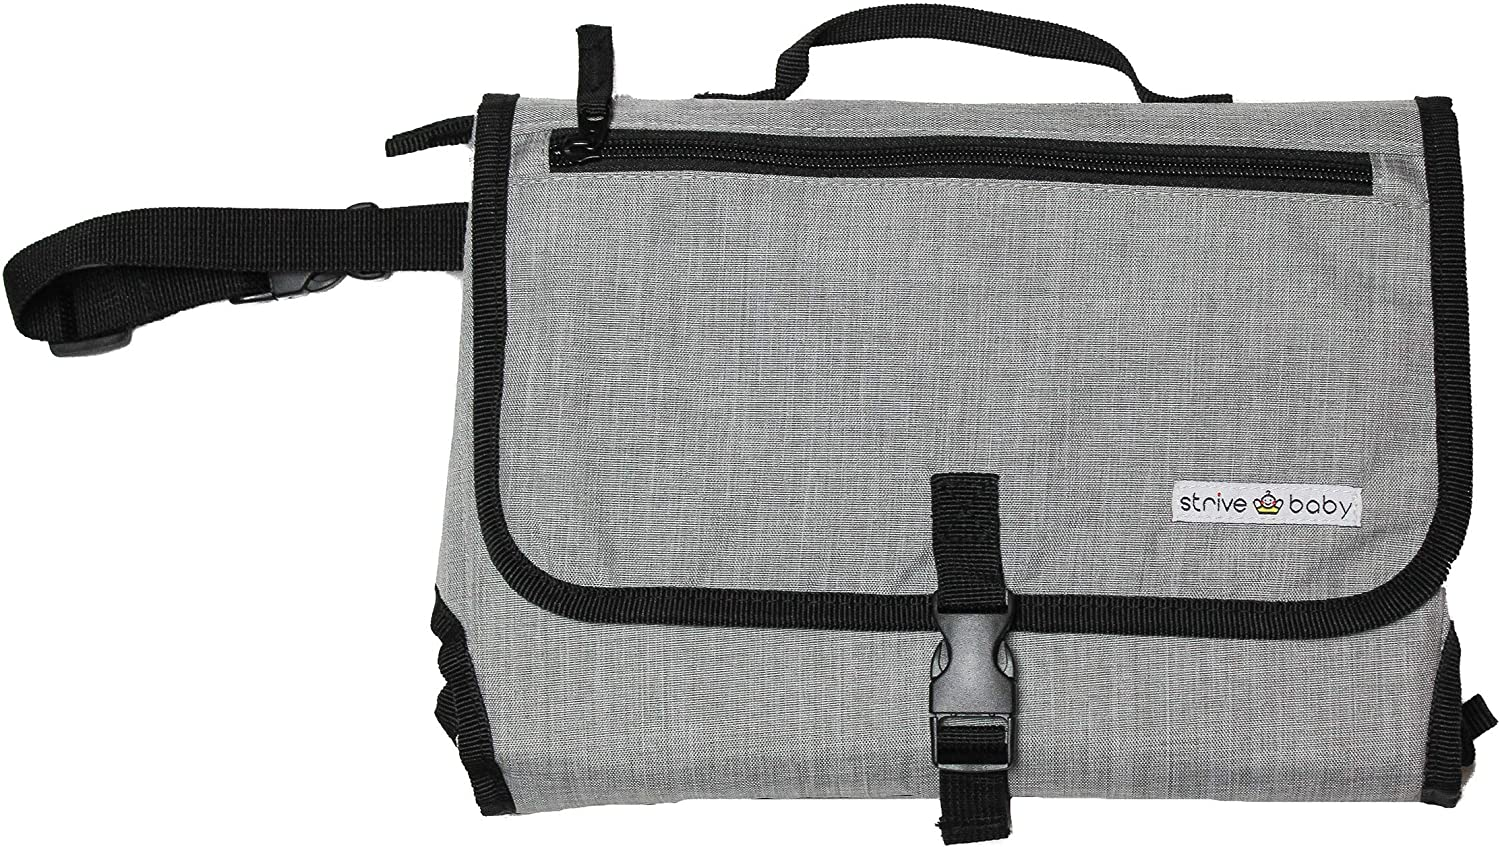 Portable Baby Changing Mat by Strive Baby - Handy Travel Diaper Changing Bag with Built in Cushion Head Pillow, Waterproof Mat and Detachable Mesh Pouch that can hold Diapers, Wipes, and Creams